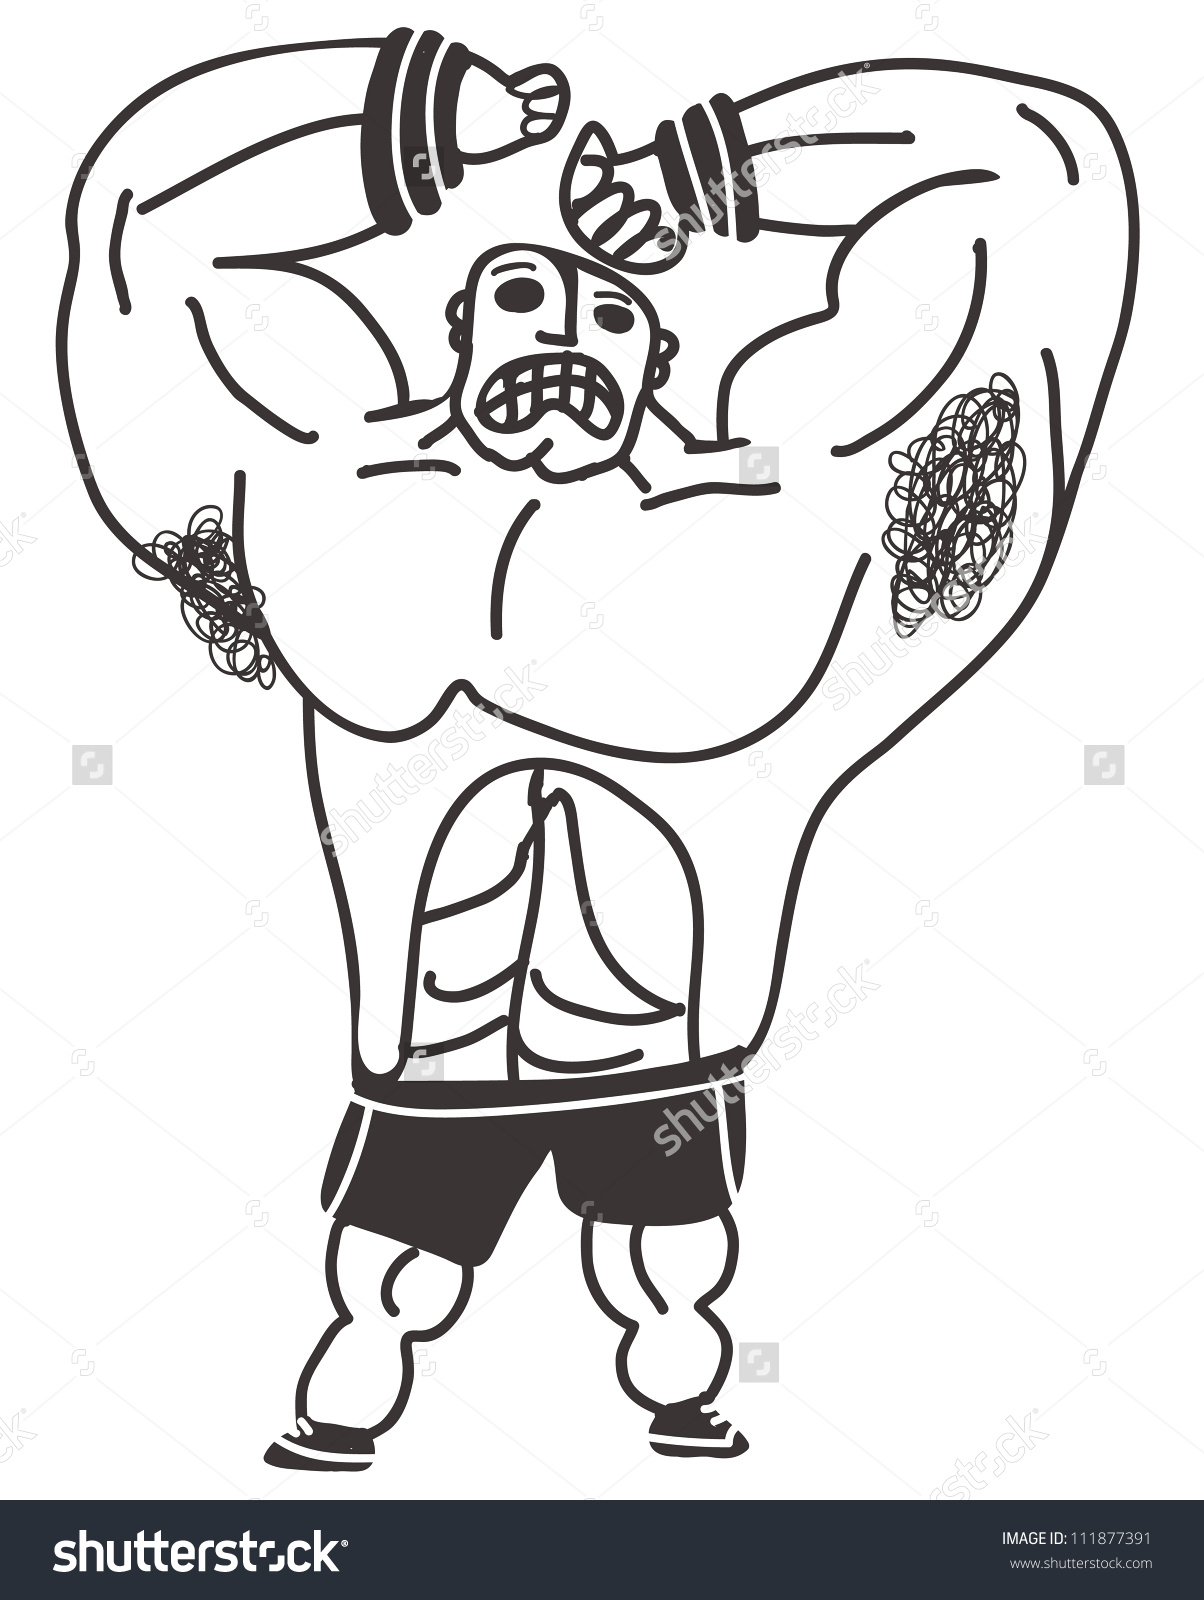 Armpit Hair Man Stock Vector Illustration 111877391 : Shutterstock.